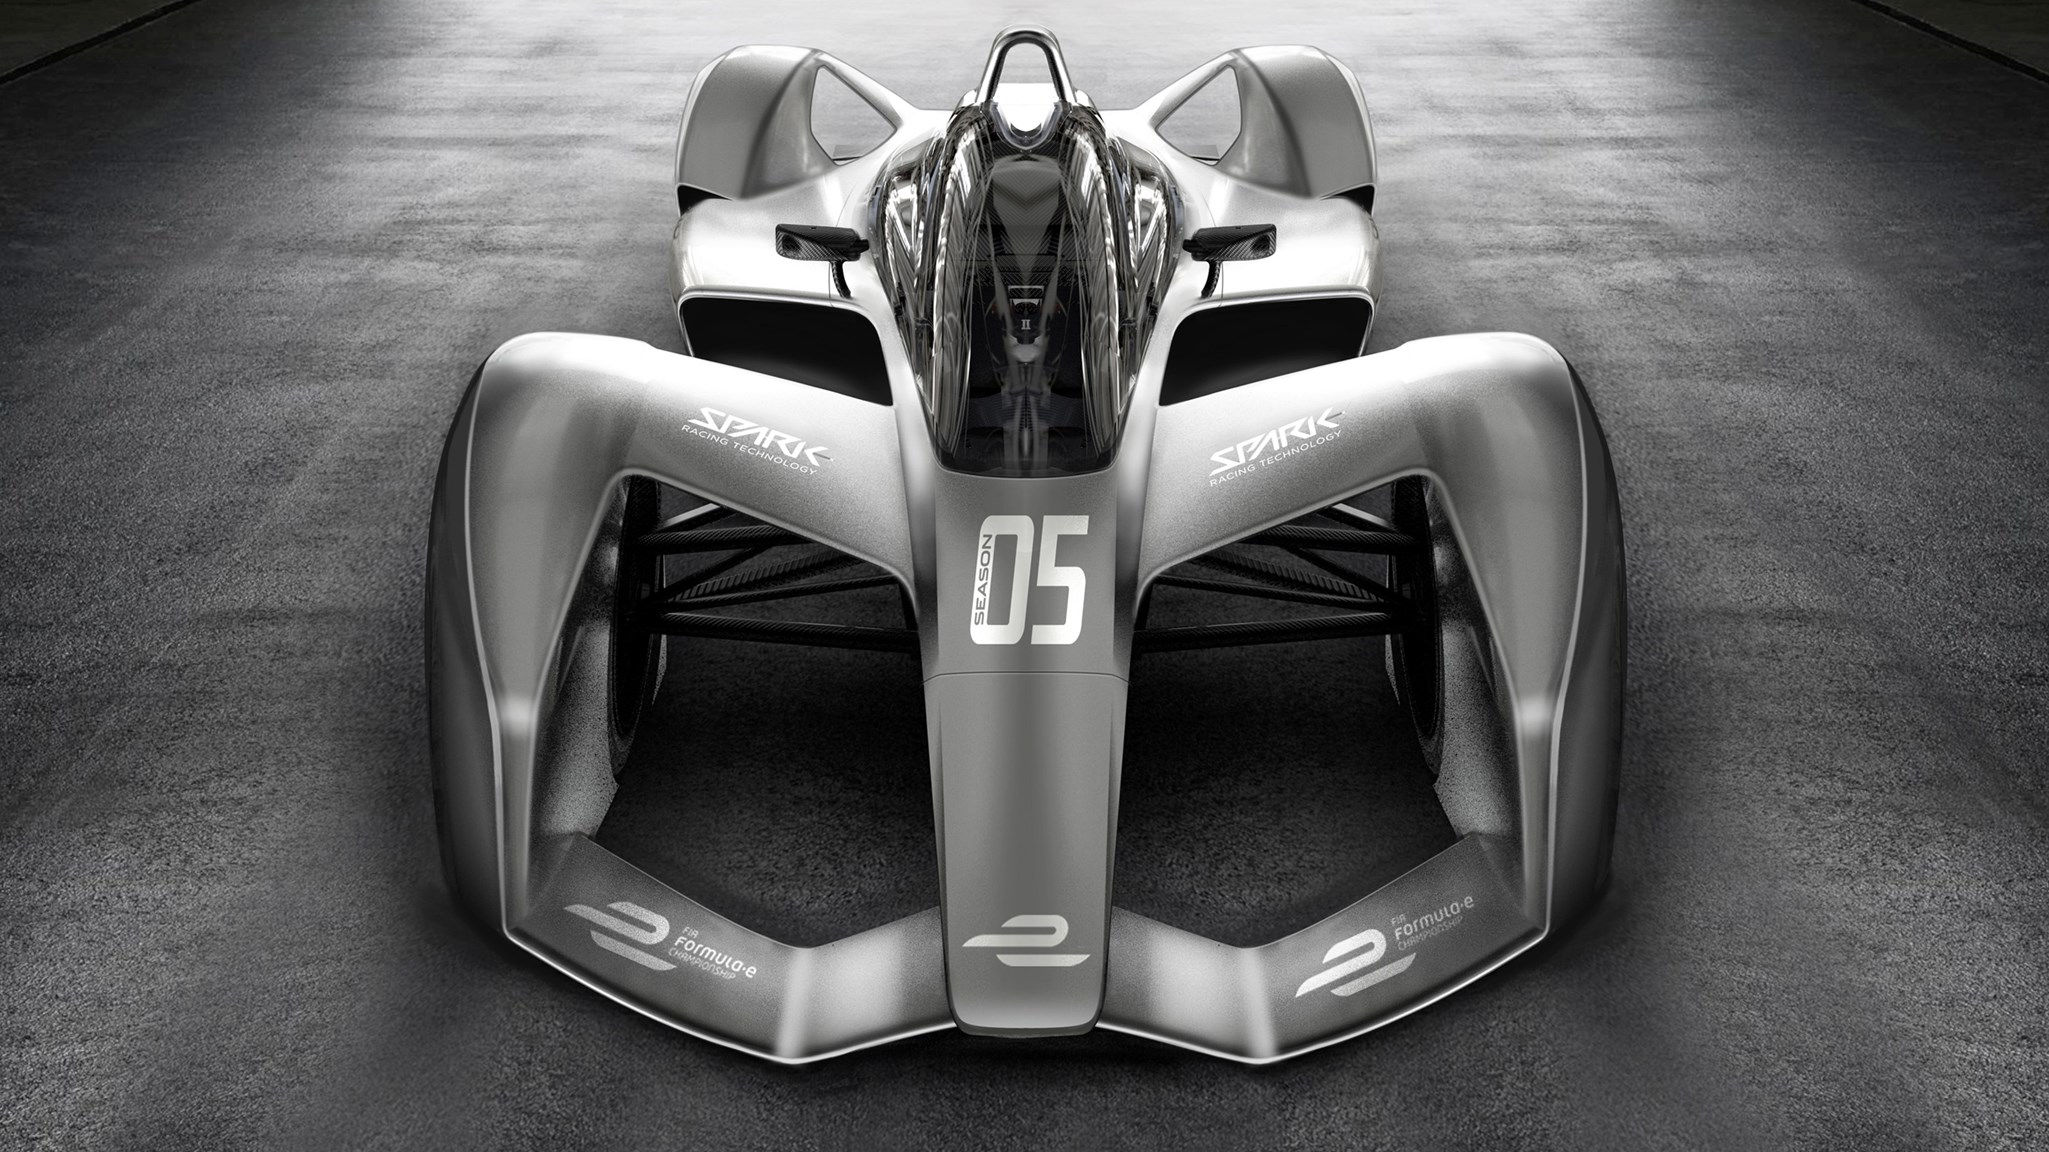 formula e gets radical redesign and mclaren power for 2018 season by car magazine. Black Bedroom Furniture Sets. Home Design Ideas